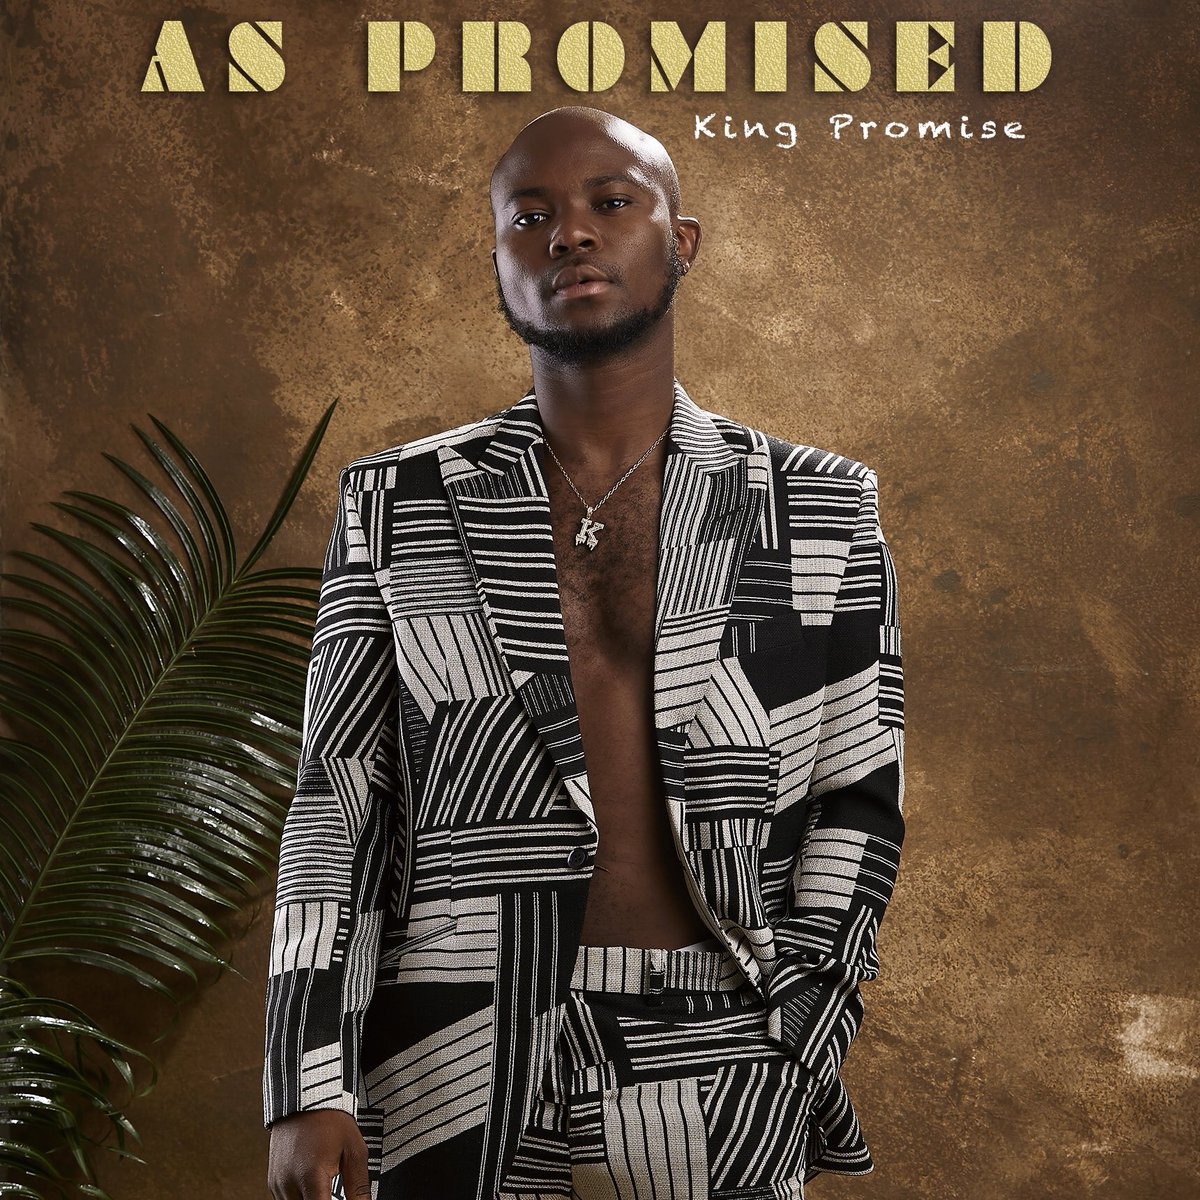 King Promise set to release his first Album on 5th July